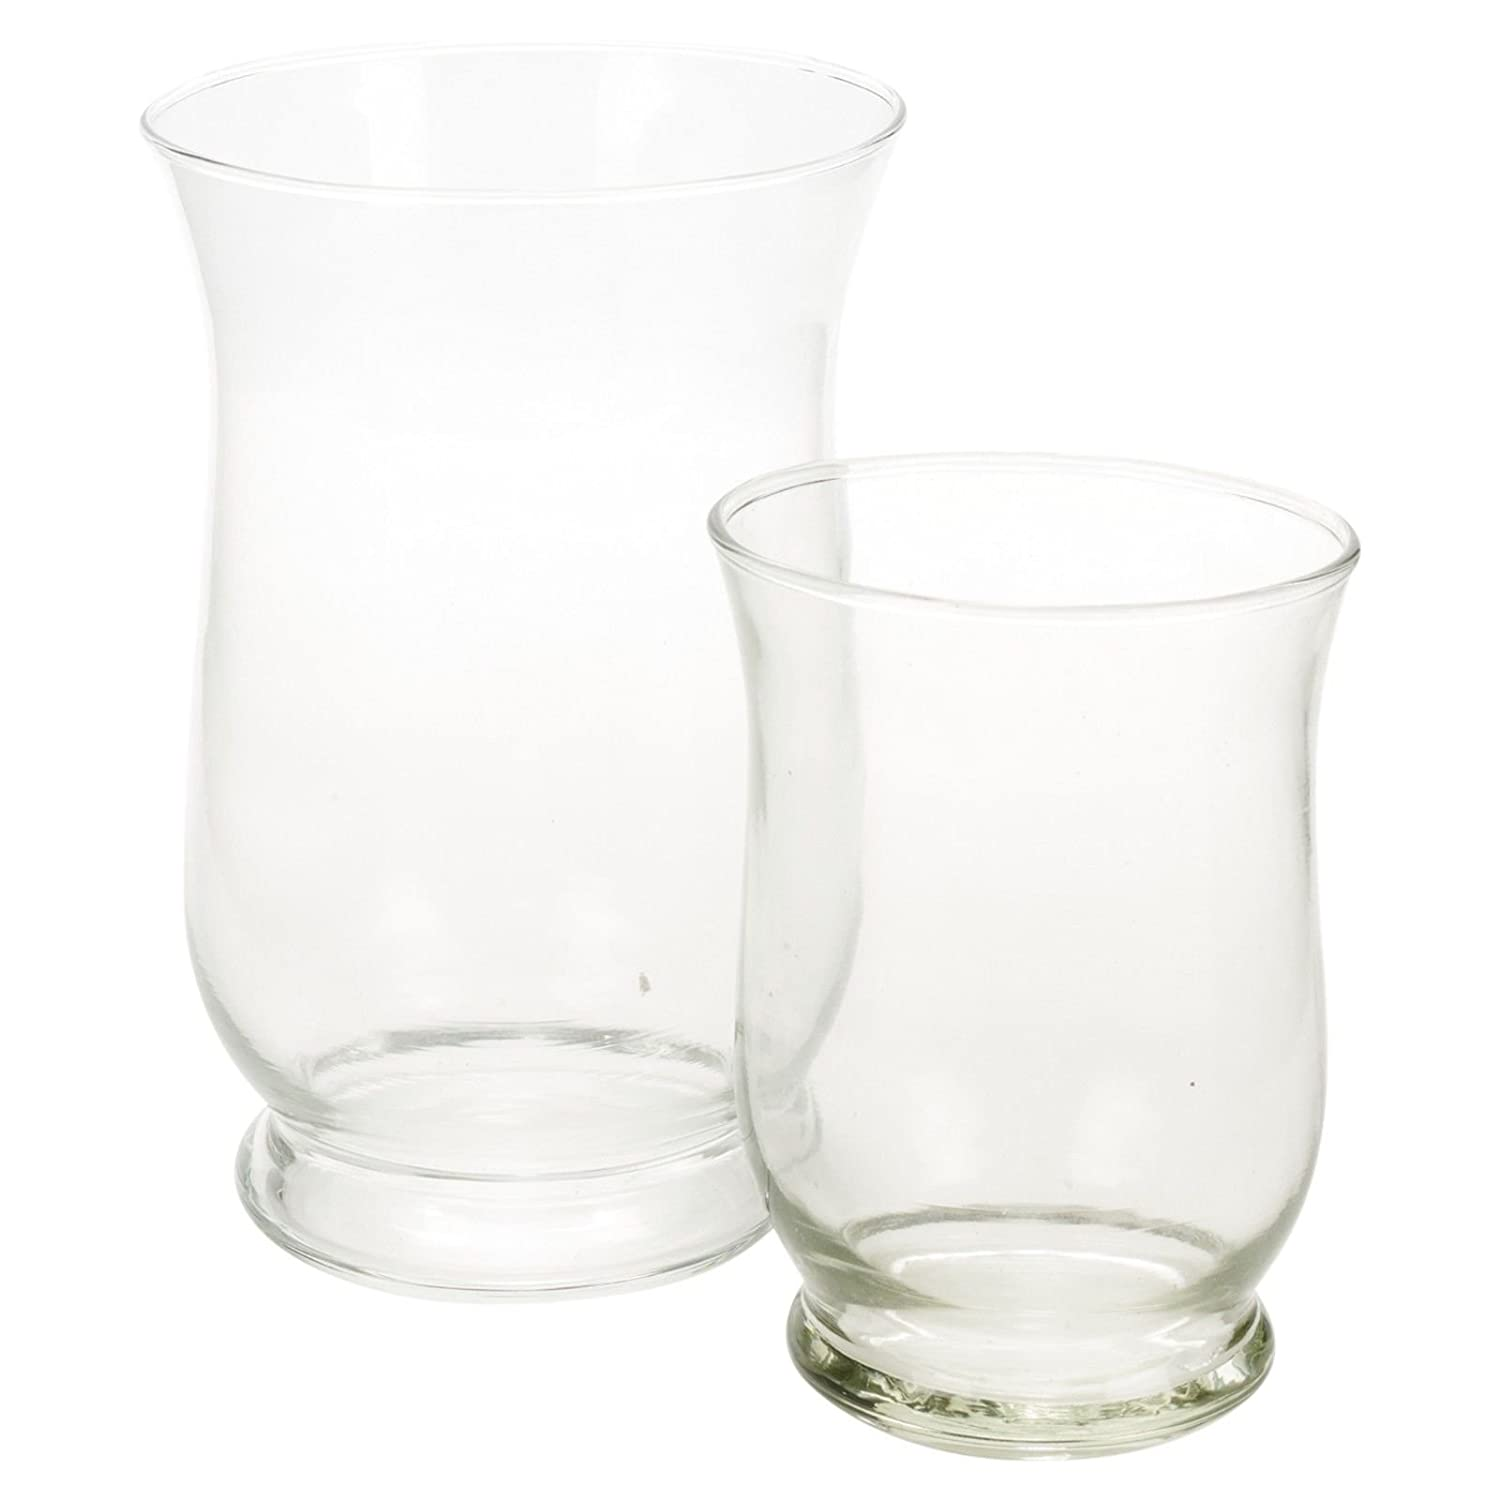 2Pc Votive Candle Holder EASYGIFT